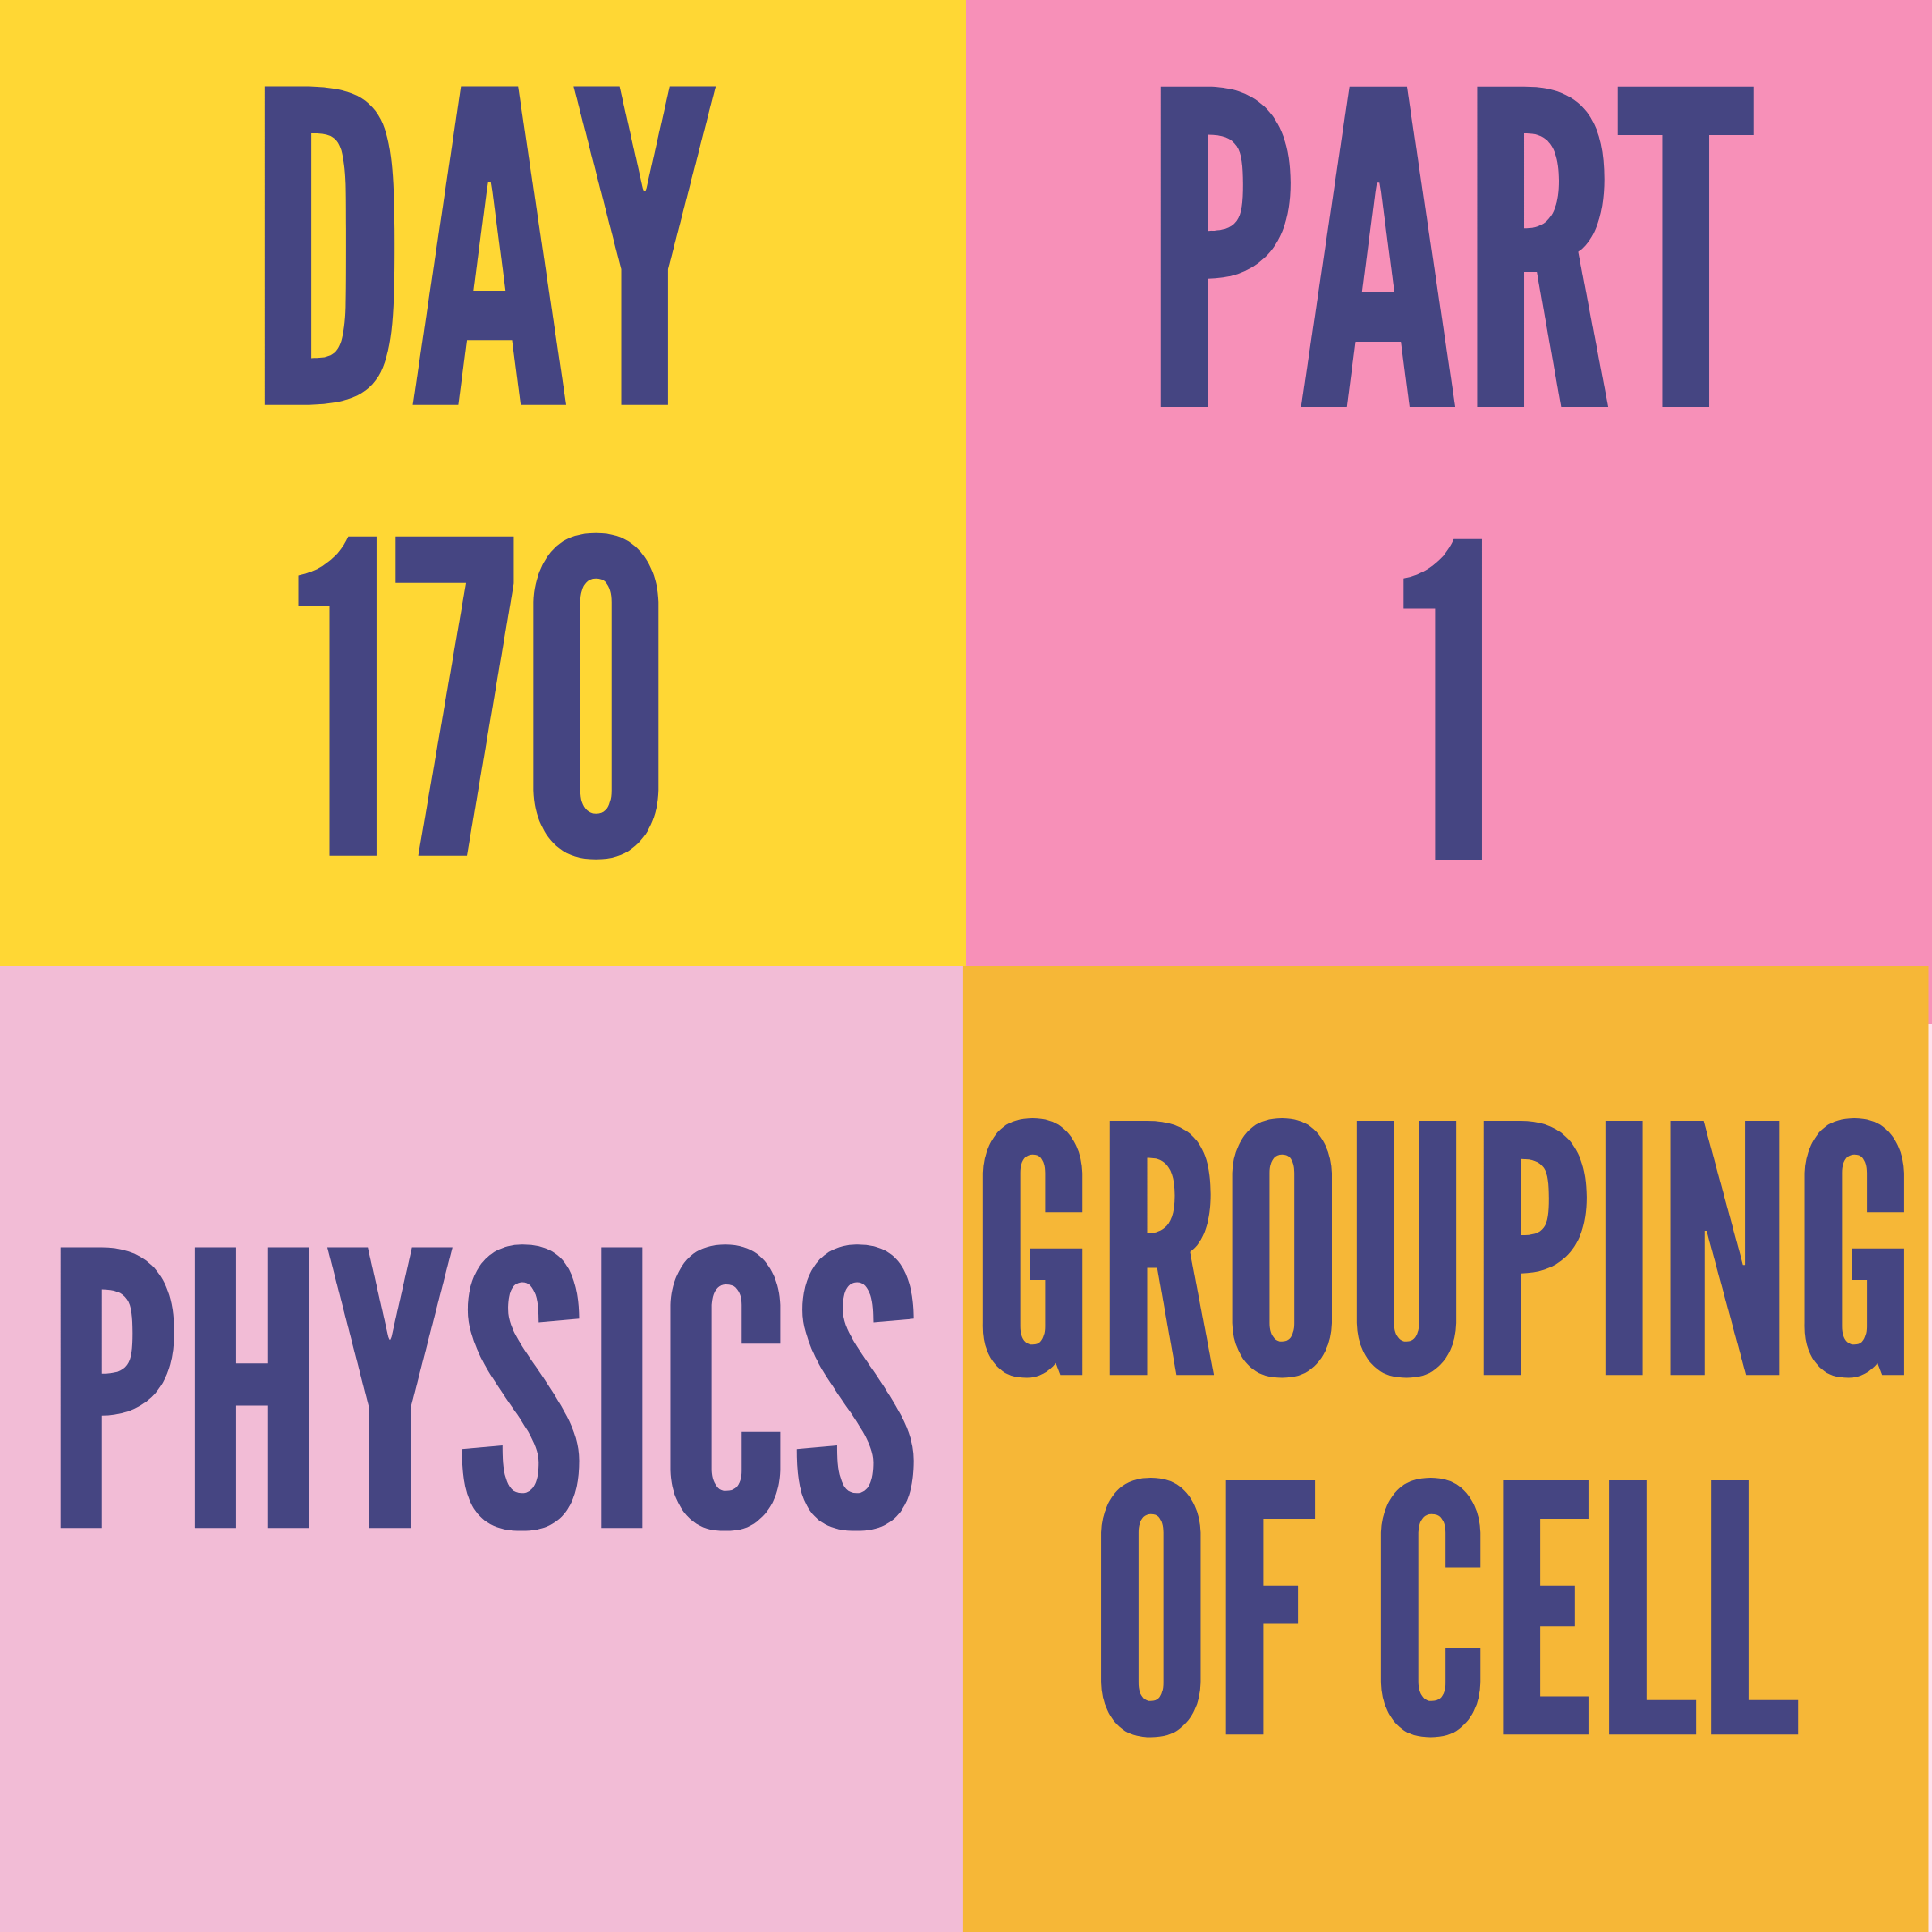 DAY-170 PART-1 GROUPING OF CELL